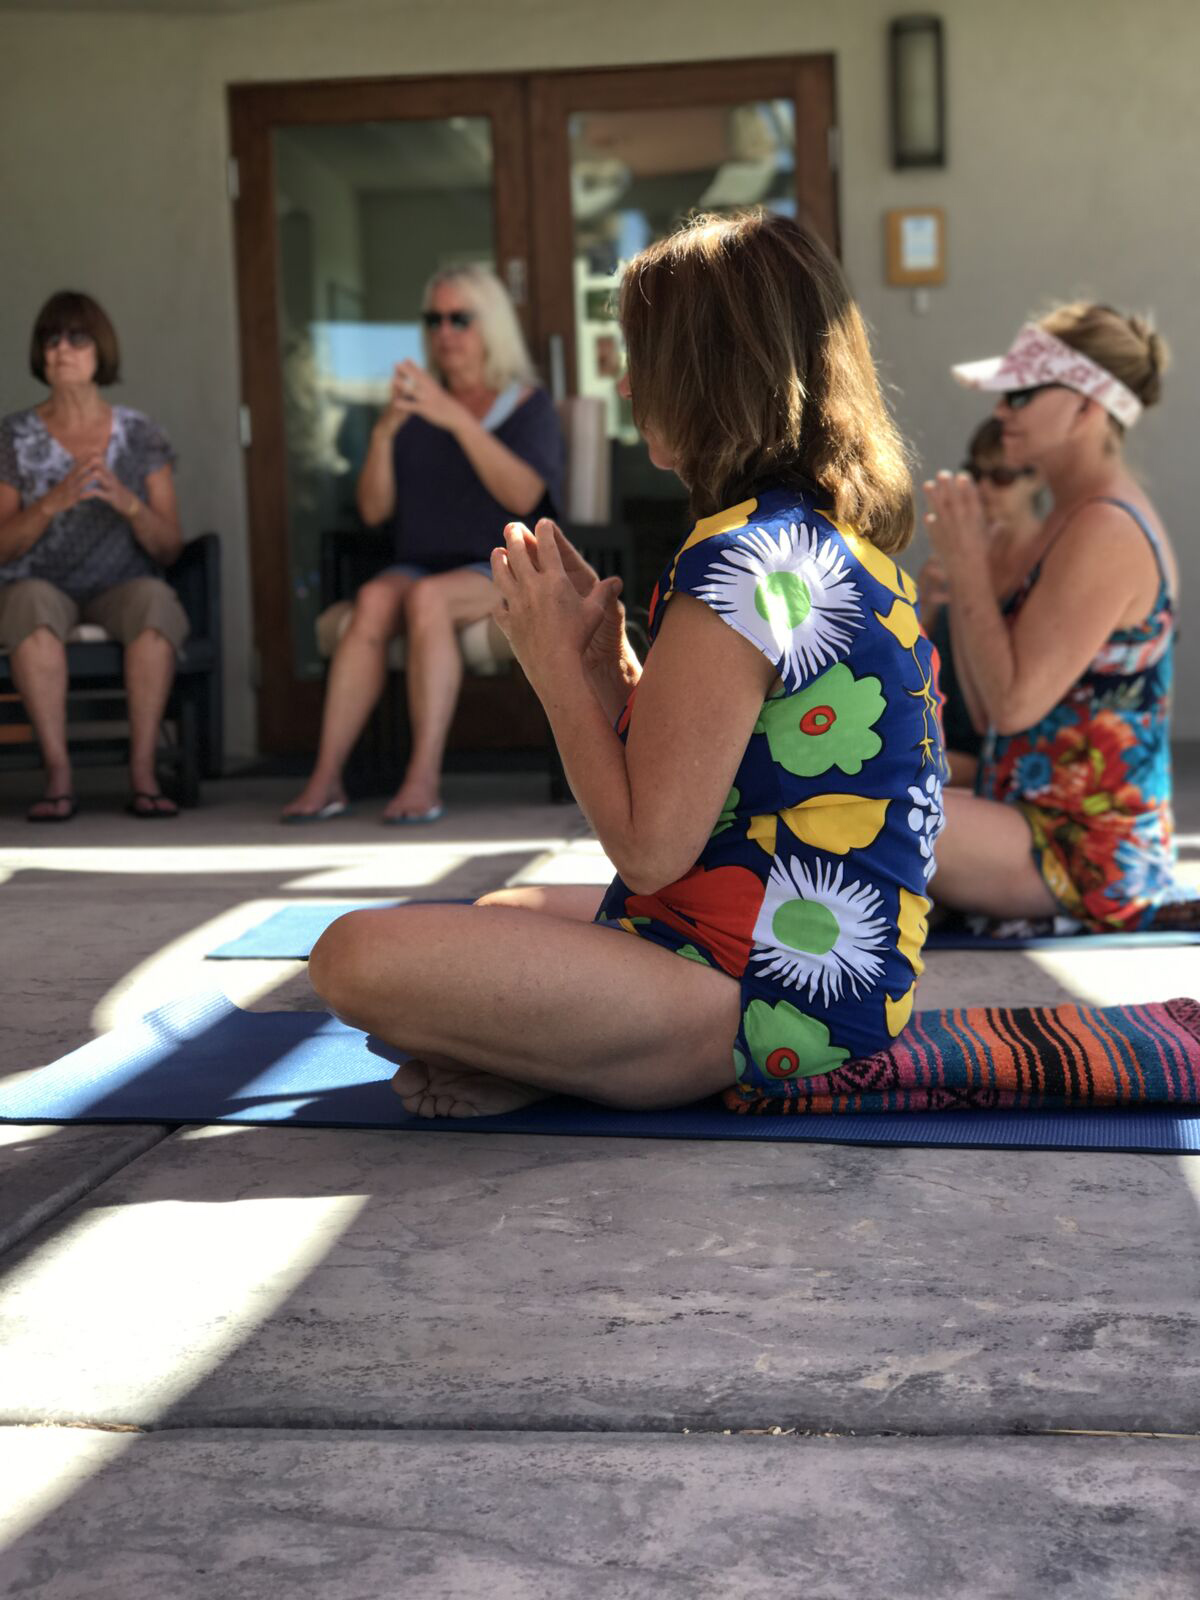 gentle yoga is a guest favorite, as it creates a send of well-being and peace of mind in a relaxed, awakened body